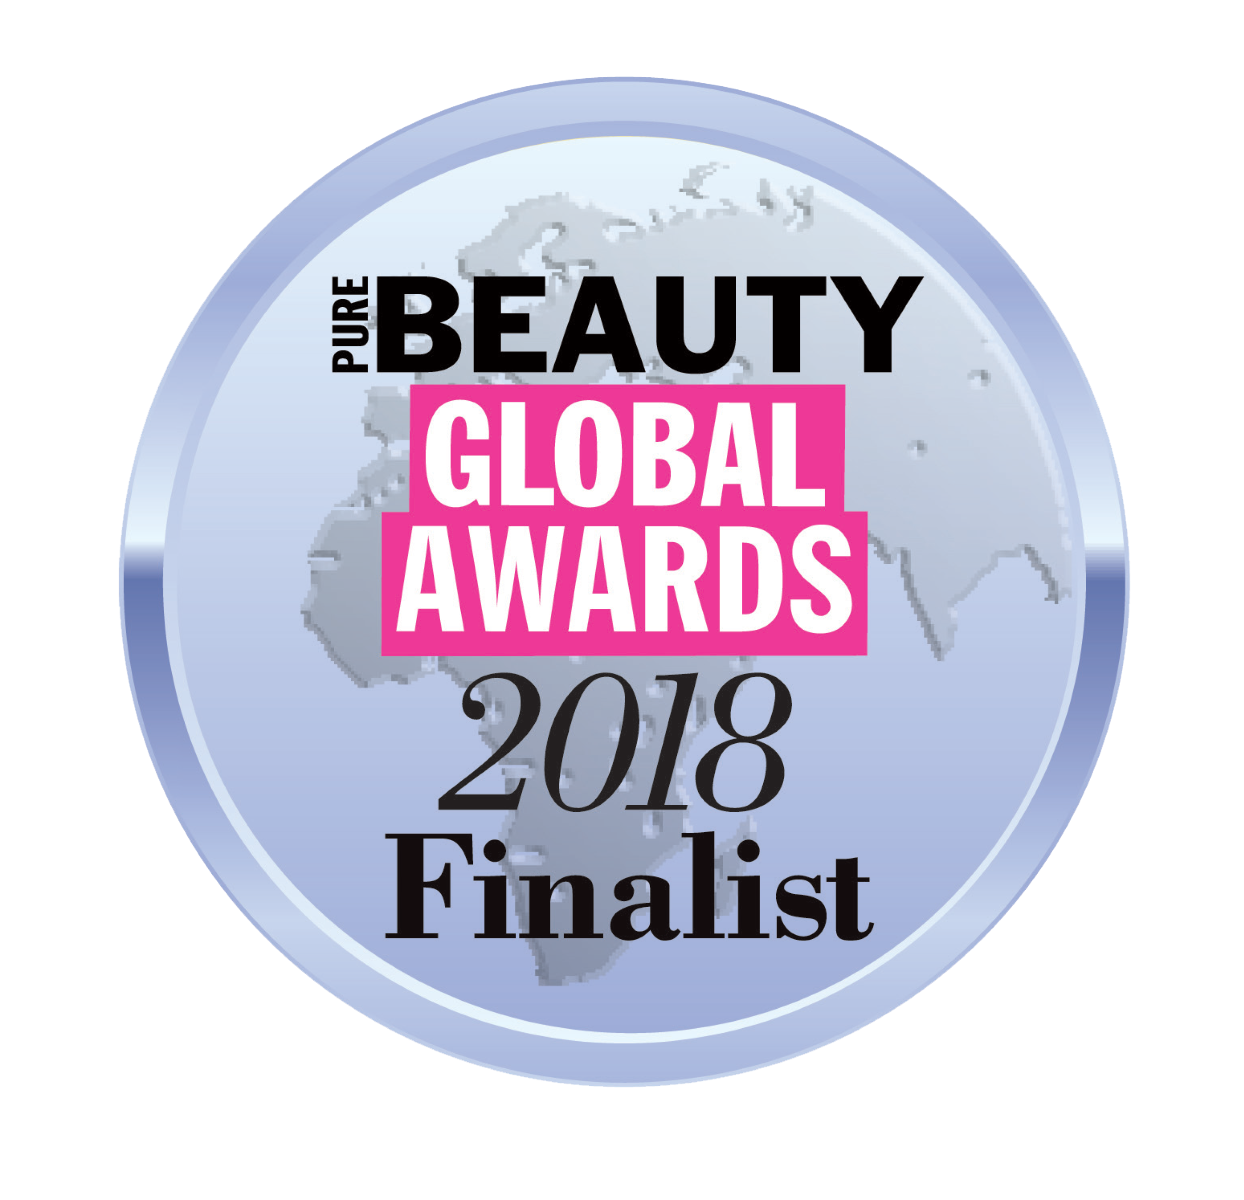 Pure Beauty Global Awards 2018